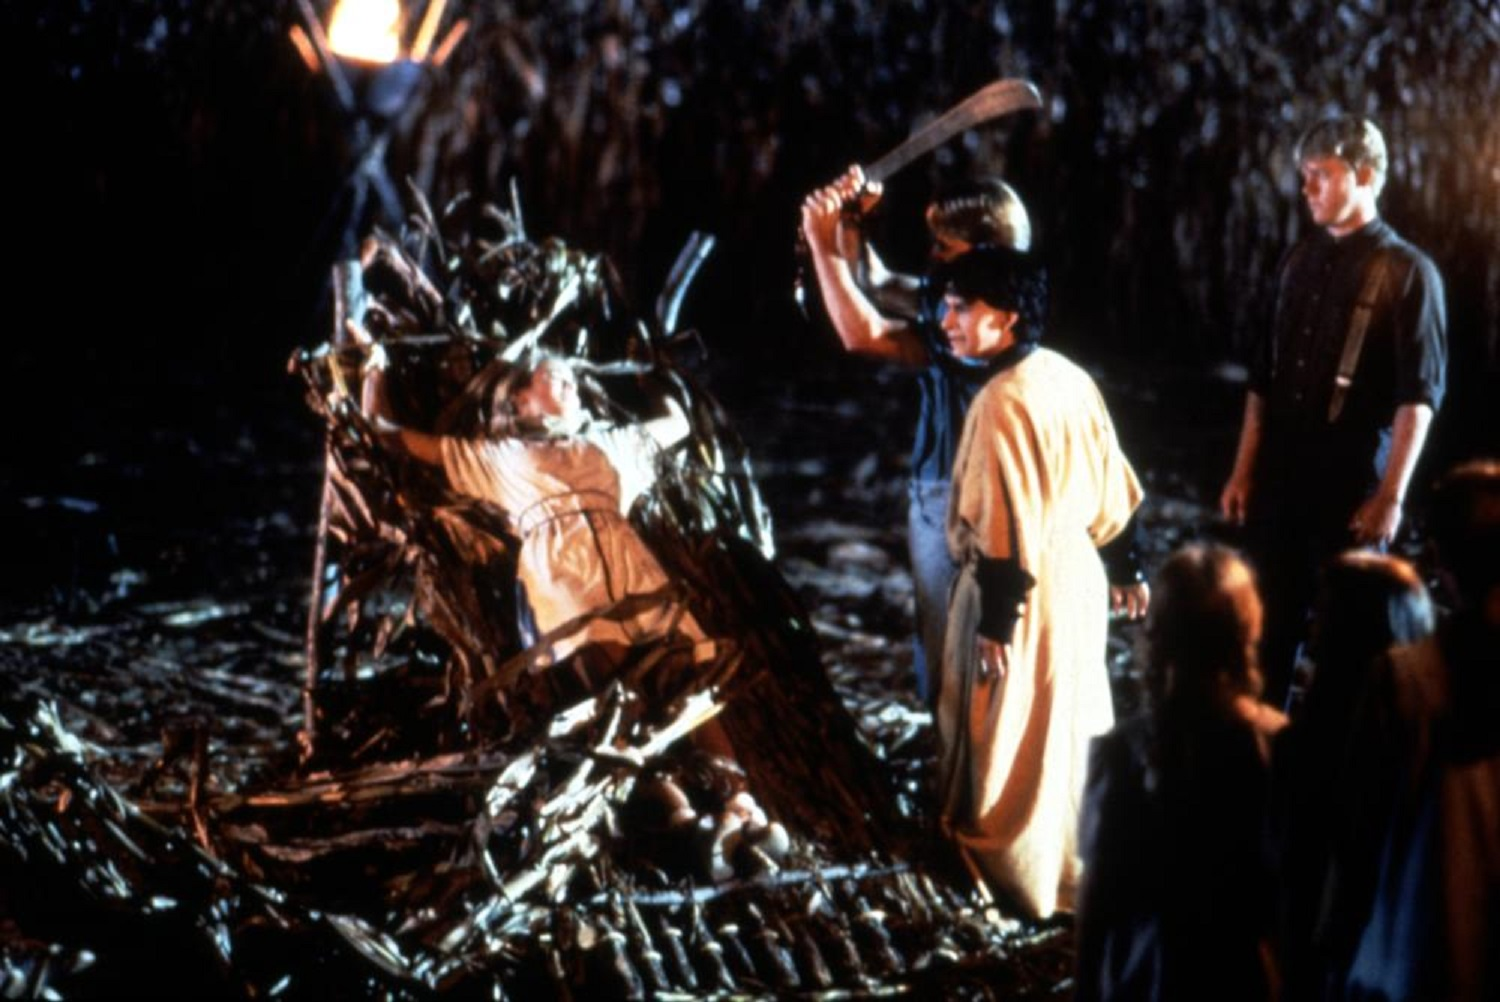 Sacrifices in the corn field in Children of the Corn II: The Deadly Sacrifice (1992)